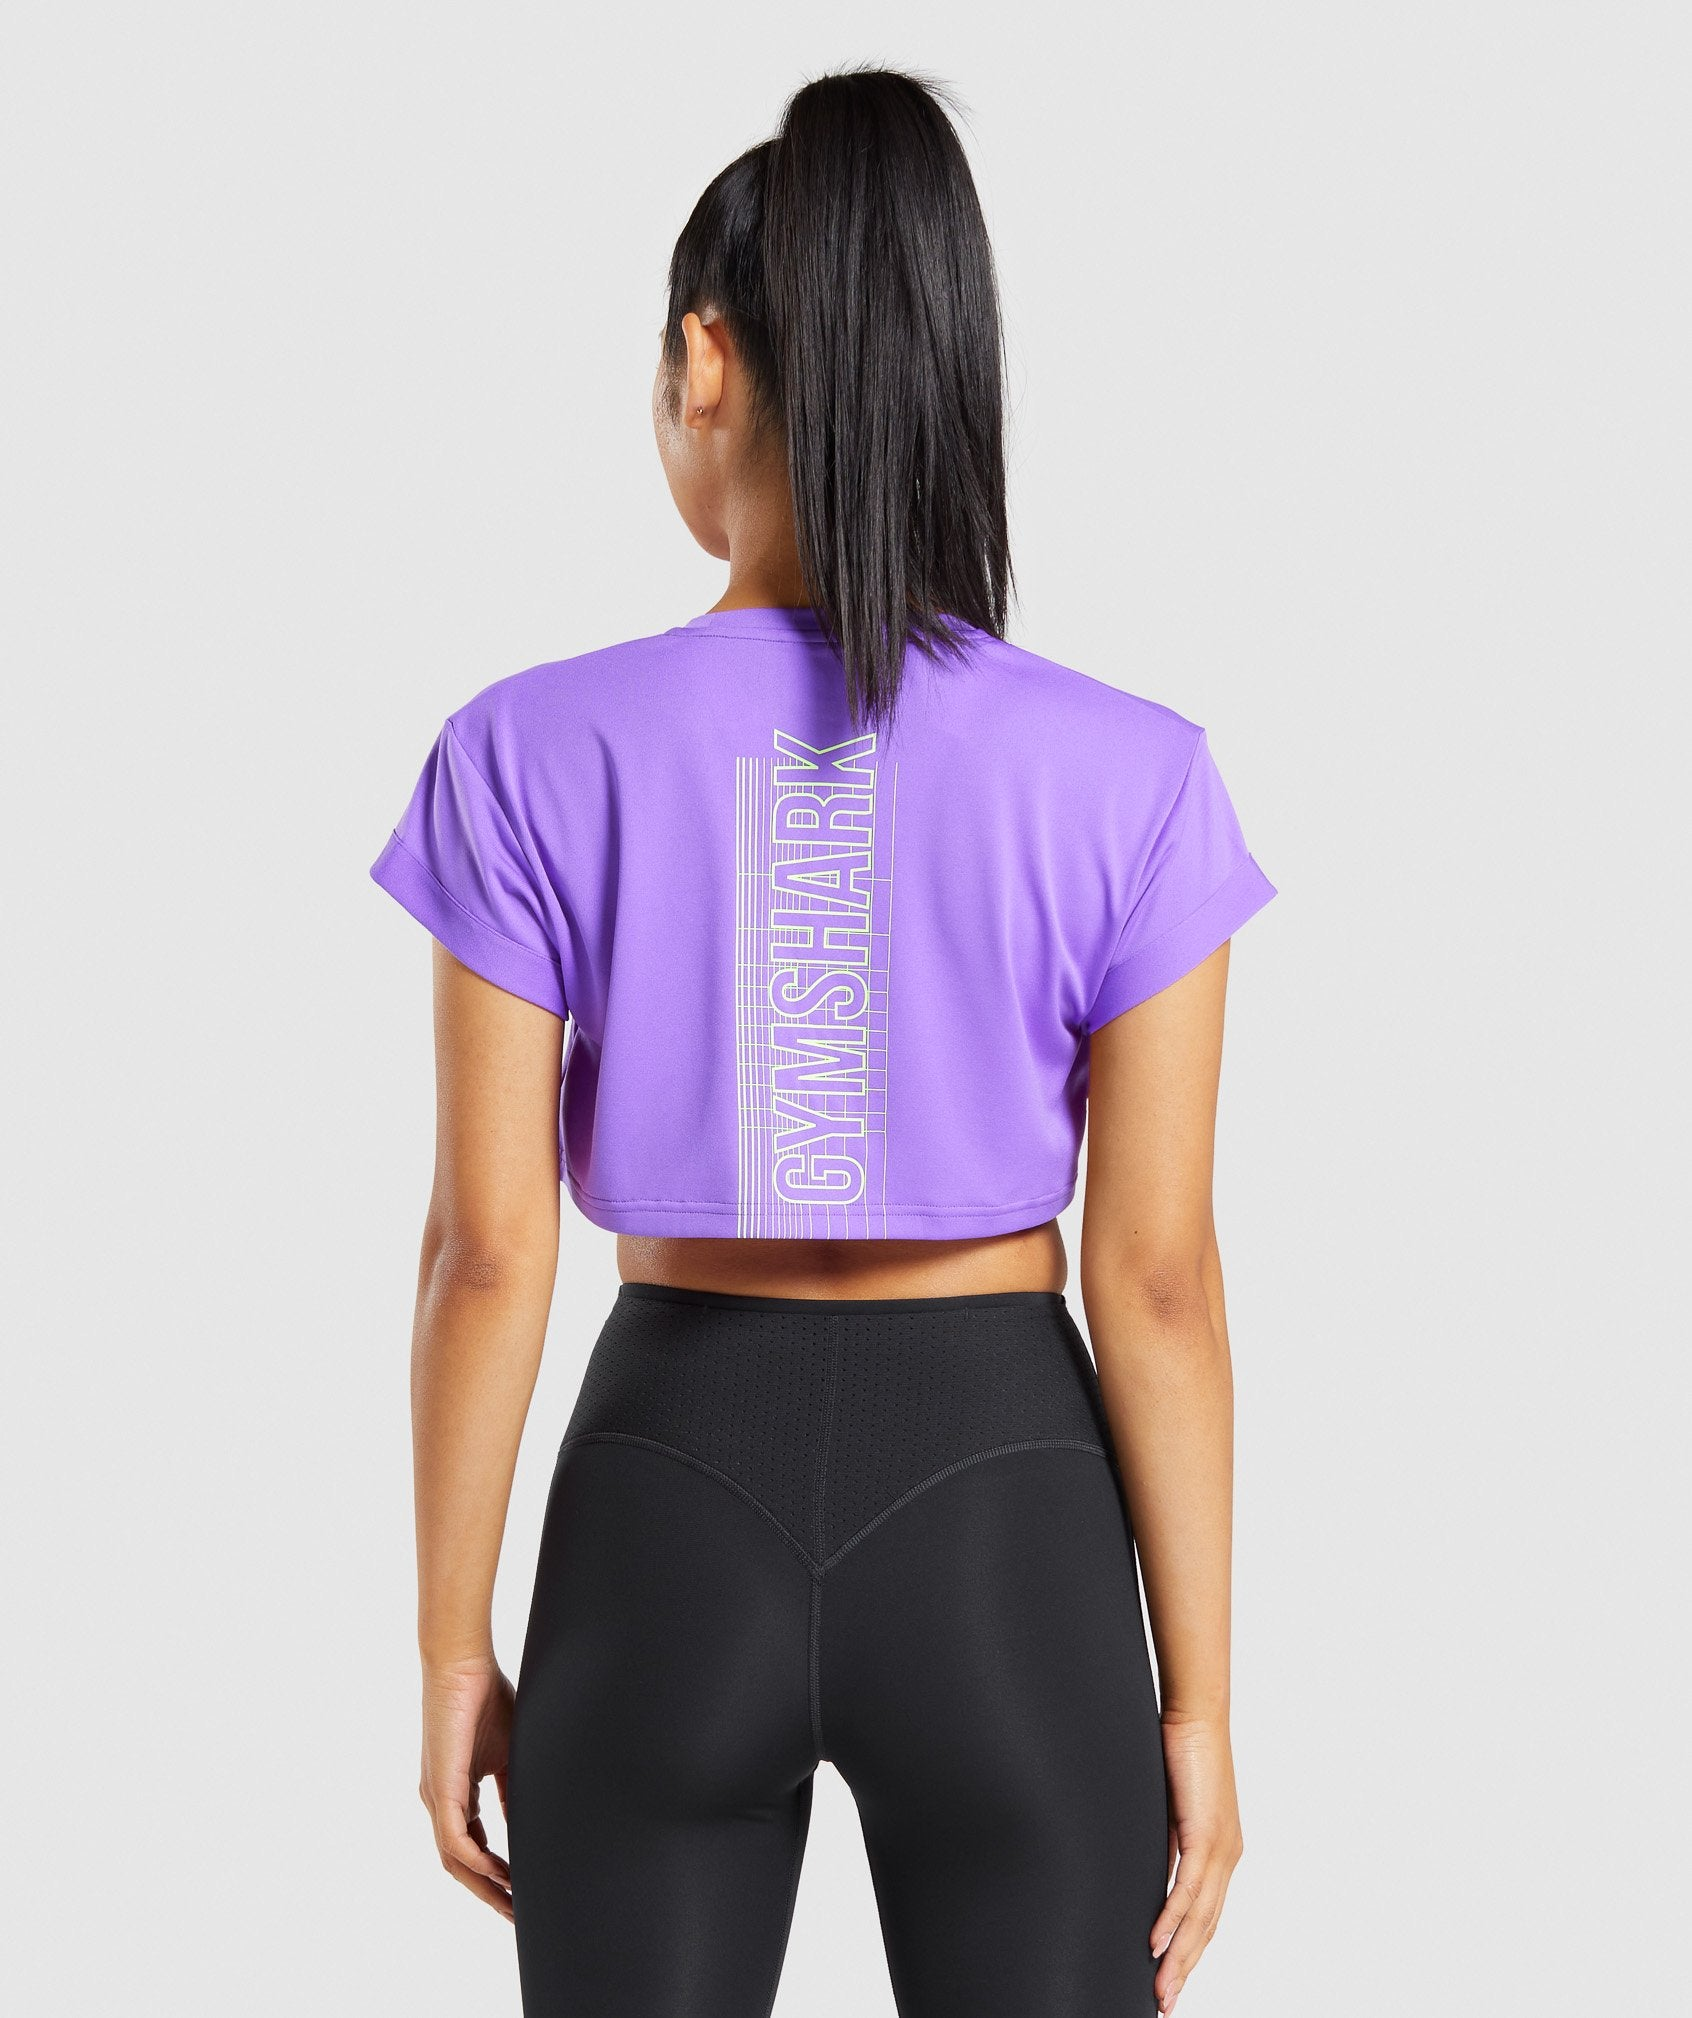 Classier: Buy Gymshark Pulse Graphic Crop Top - Purple - Gymshark